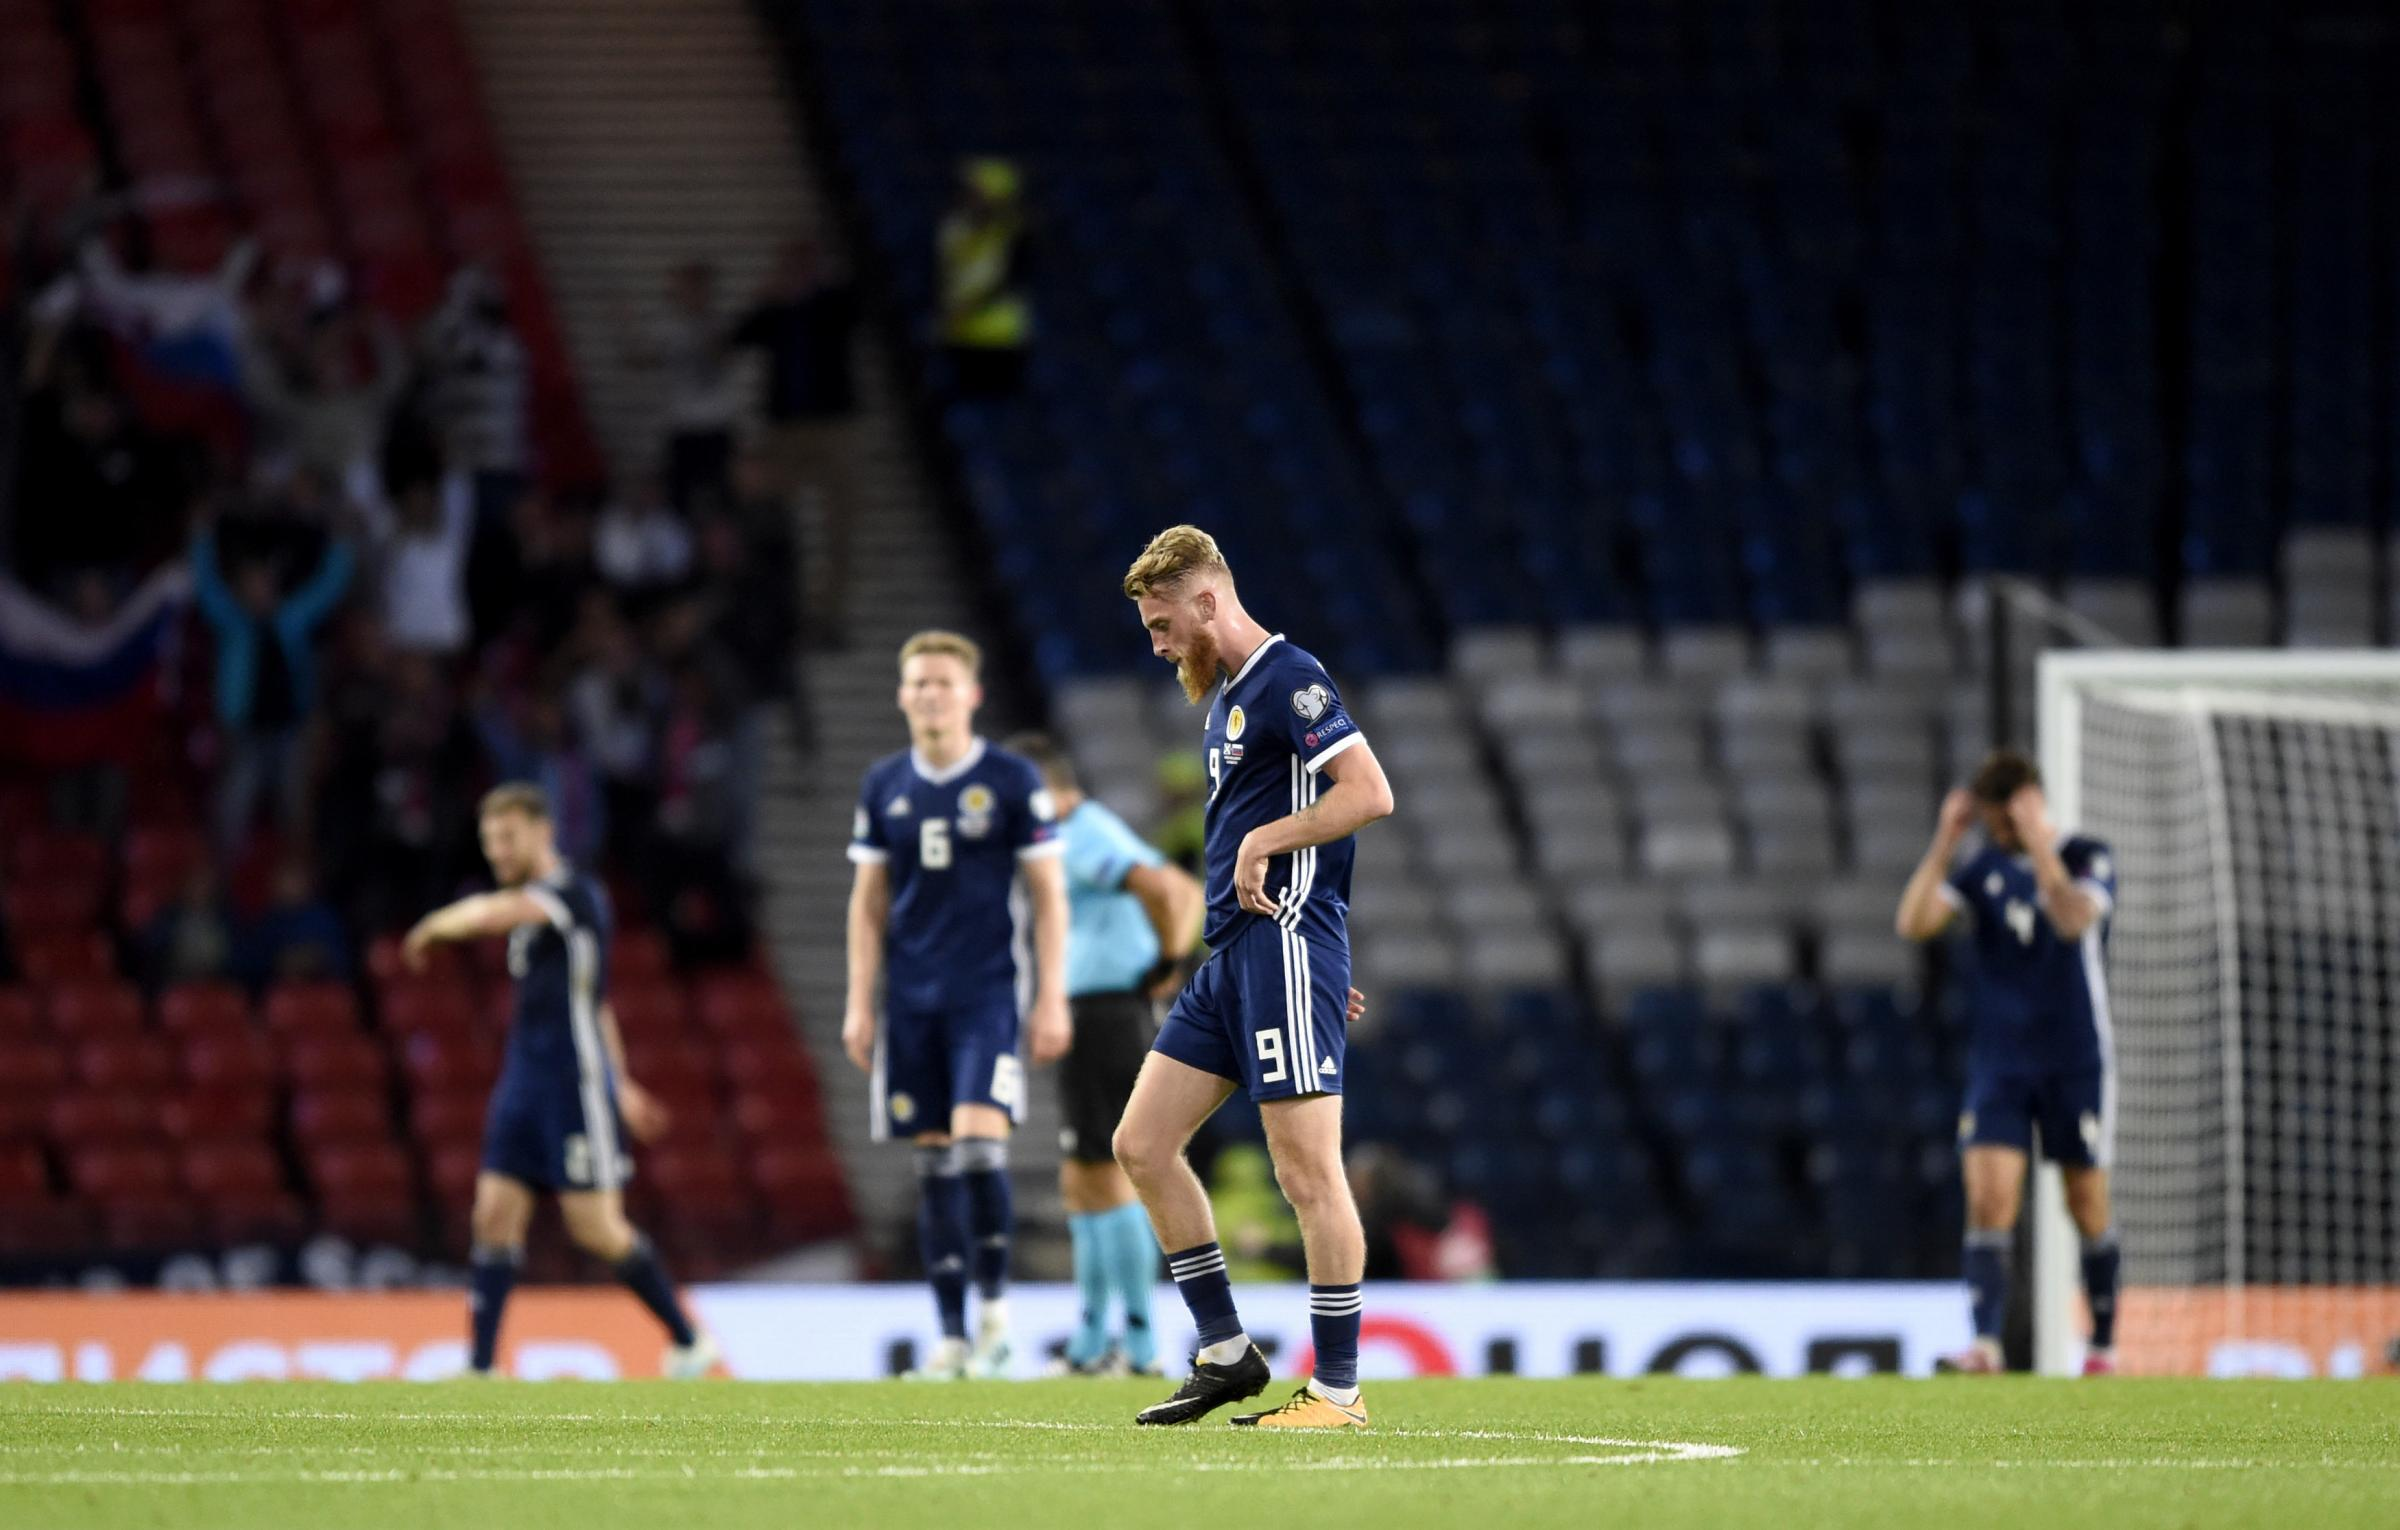 Player watch: Oli McBurnie may not have won over the doubters, but he proved his commitment to Scotland